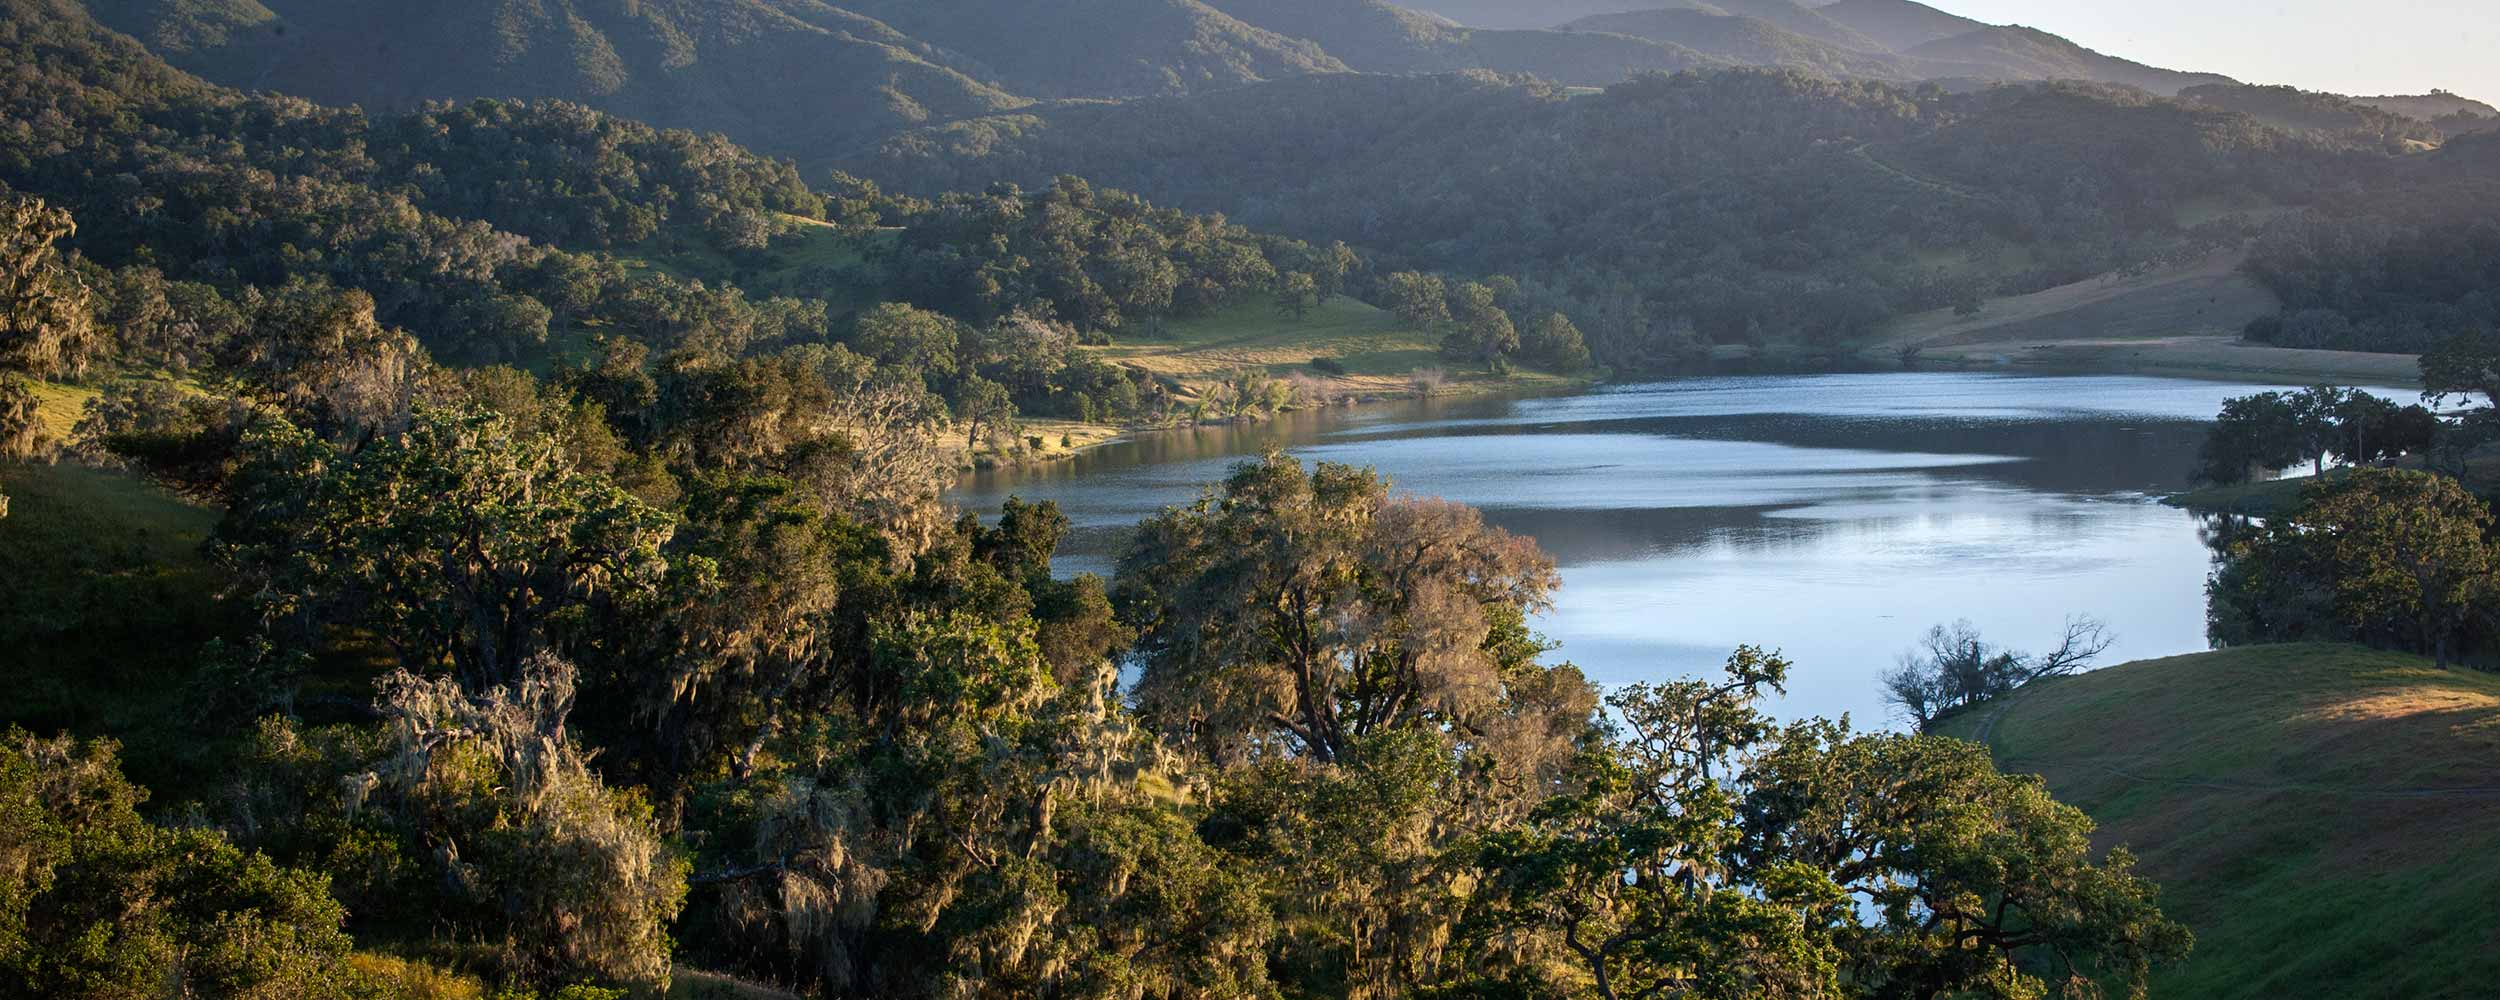 View of Alisal Lake - Alisal Resort in Solvang California